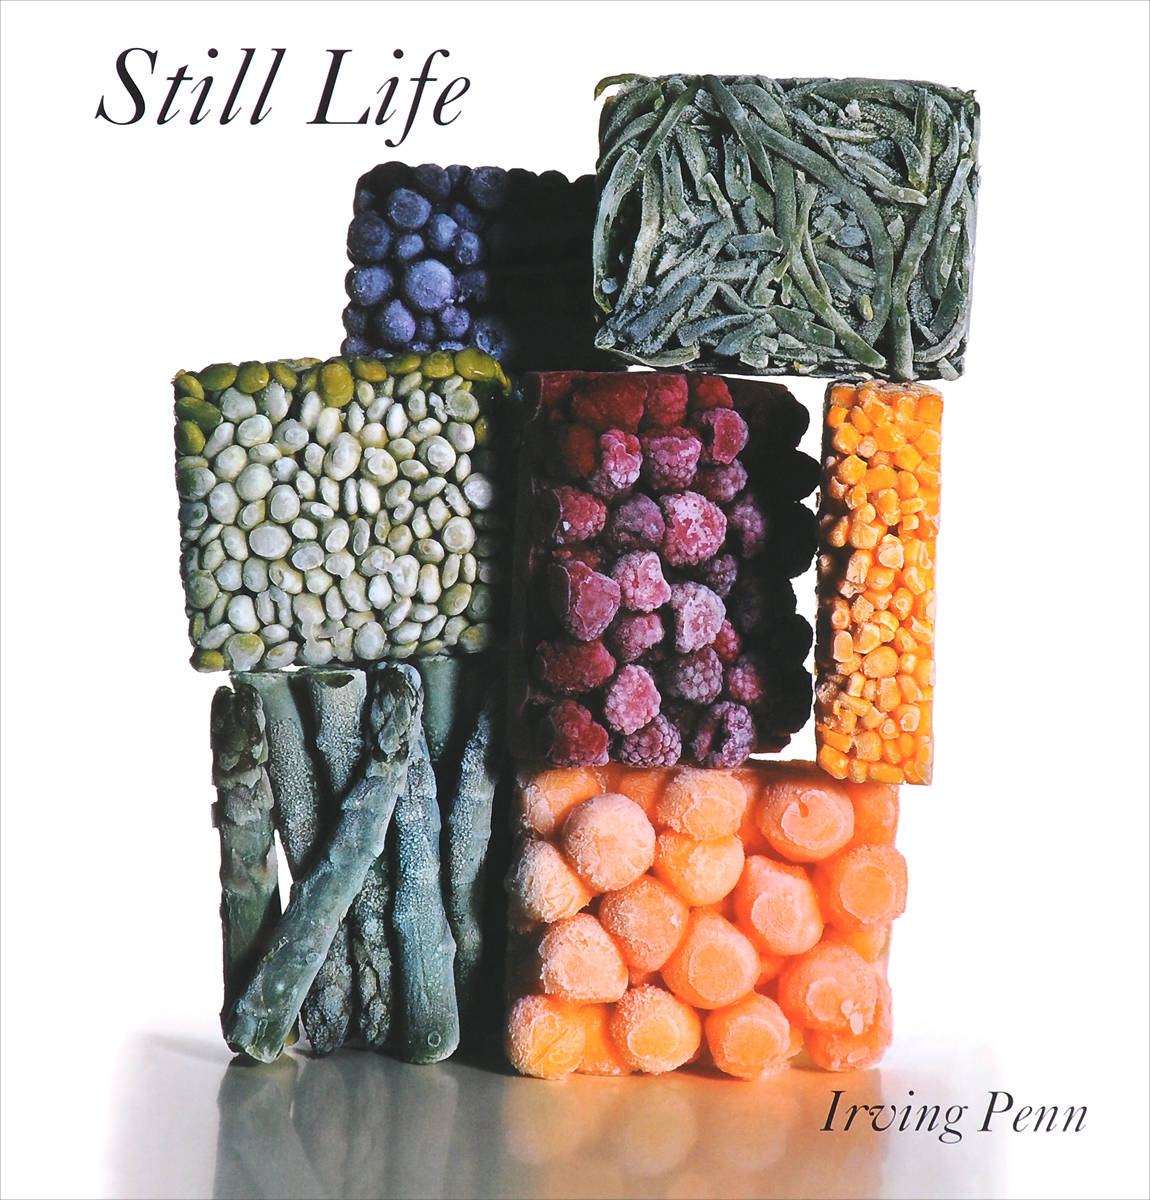 Still Life still loves julia still loves julia one path of life